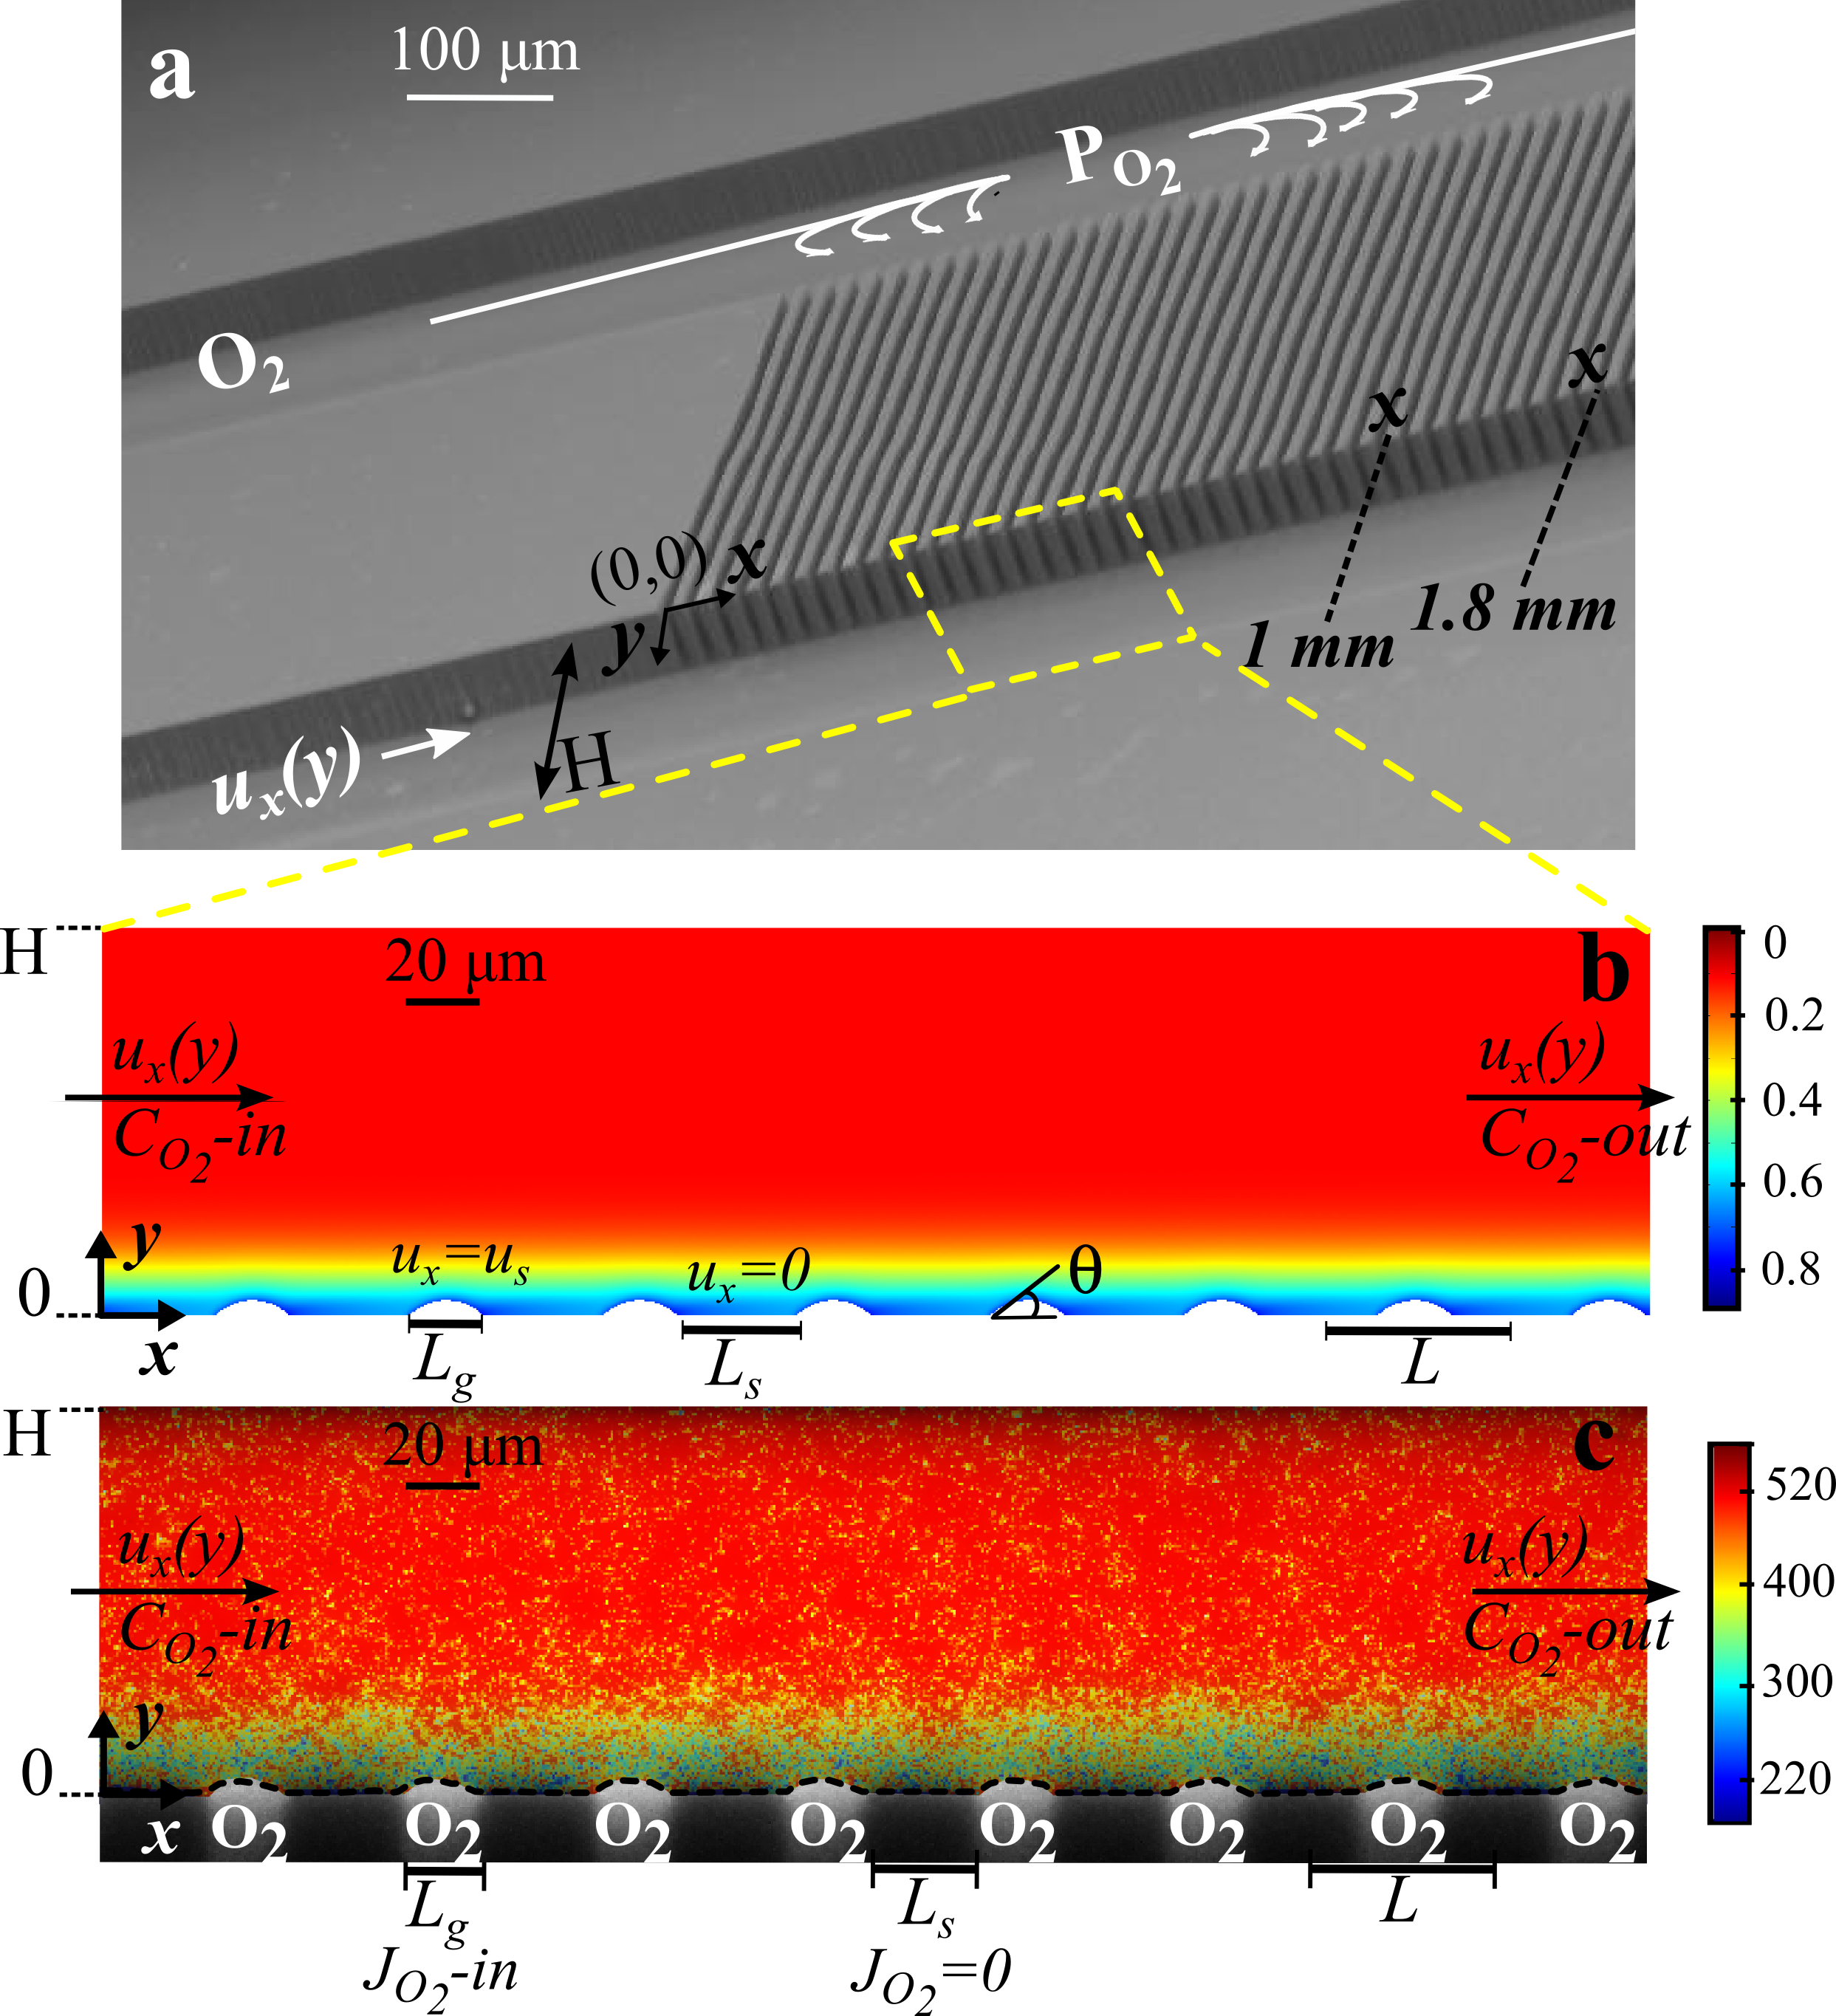 Figure 1. Microfluidic bubble mattress (a). Numerical simulations of dissolved oxygen in water with identical settings in FLIM experiments (b), the color bar shows the oxygen concentration. Lifetime field resolved by FLIM superimposed on the bright-field microscopy image showing bubbles protruding into the water (c), the color bar indicates fluorescence lifetime in nanoseconds.